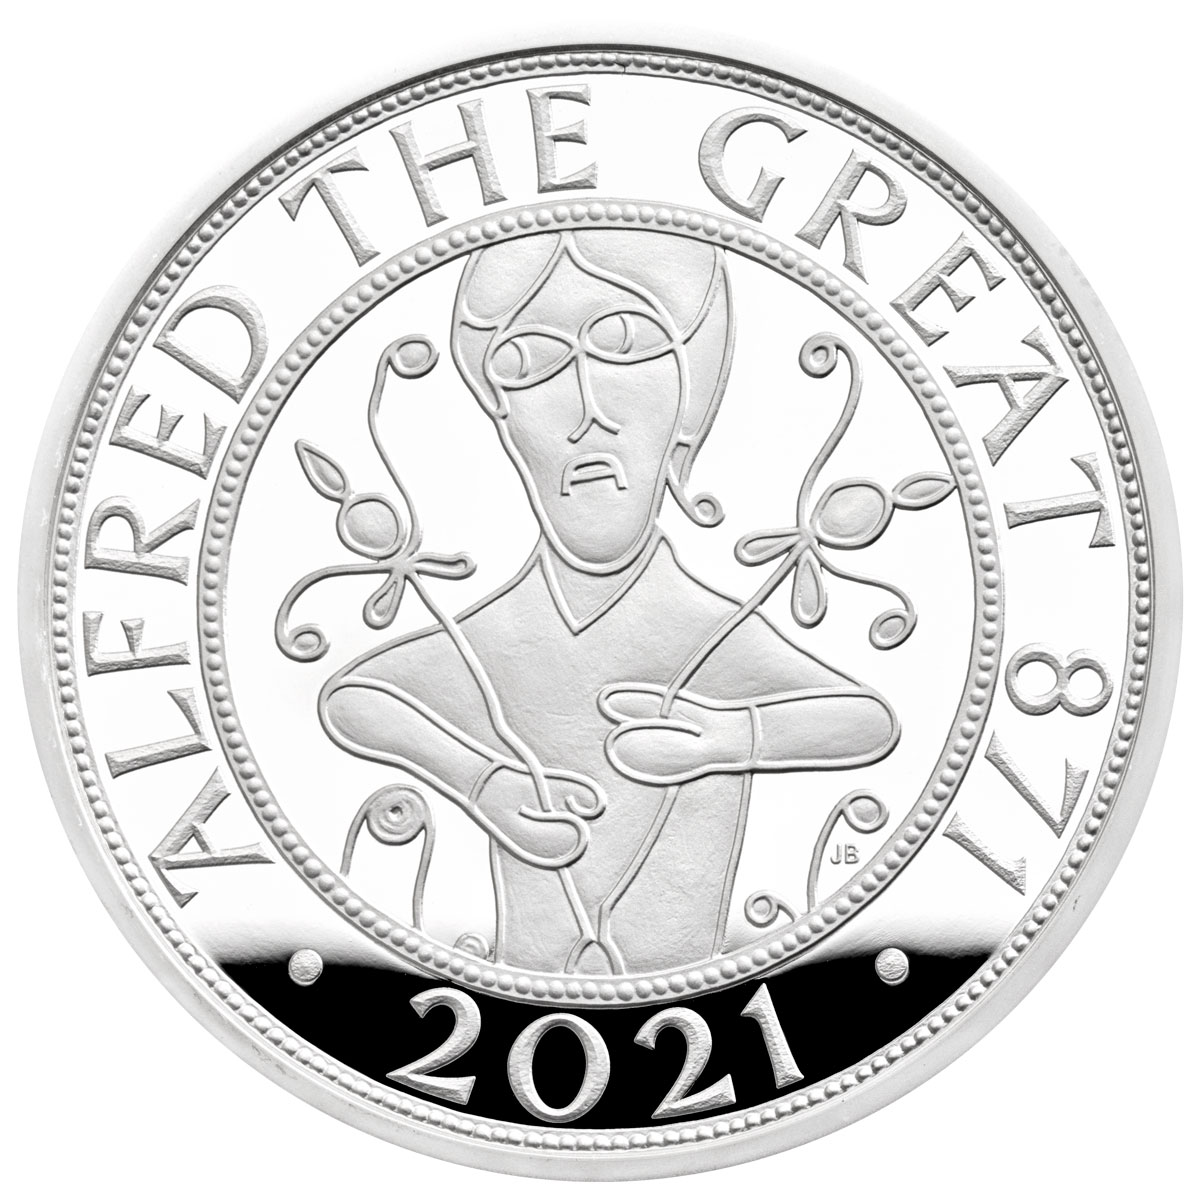 2021 Great Britain Alfred The Great 28.28 g Silver Proof £5 Coin GEM Proof